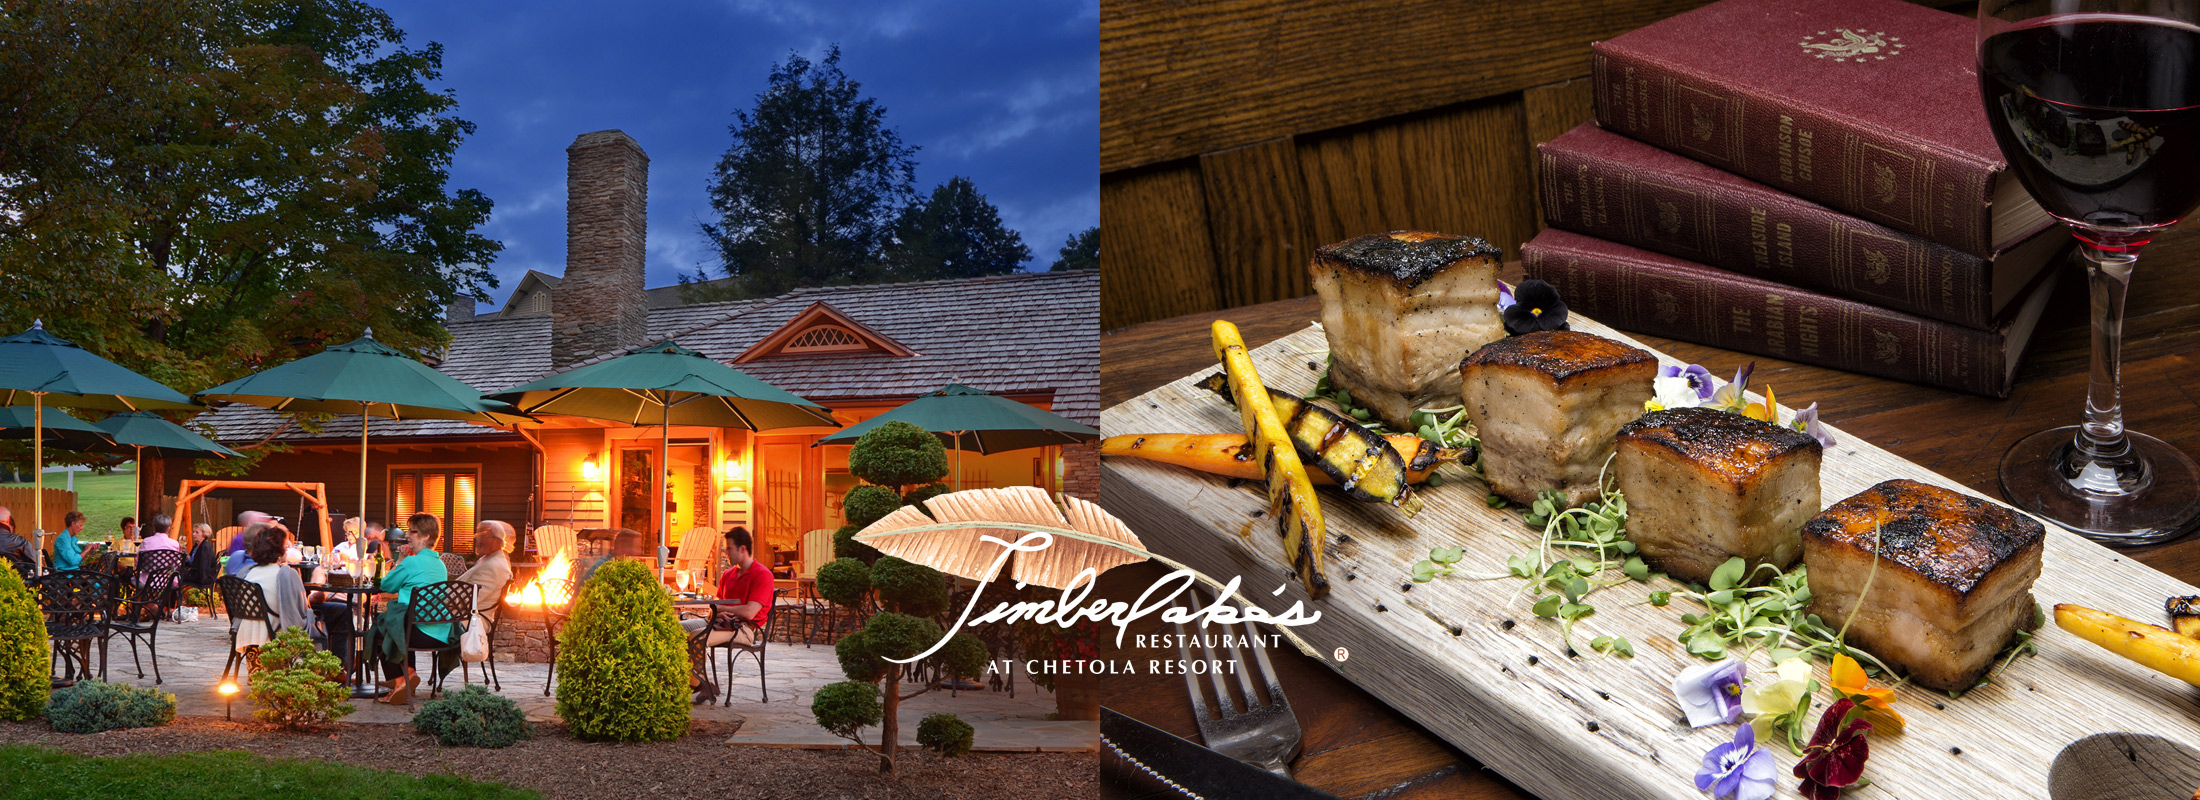 image of timberlake's patio on left and scallops plate on right - click to go into the restaurant page